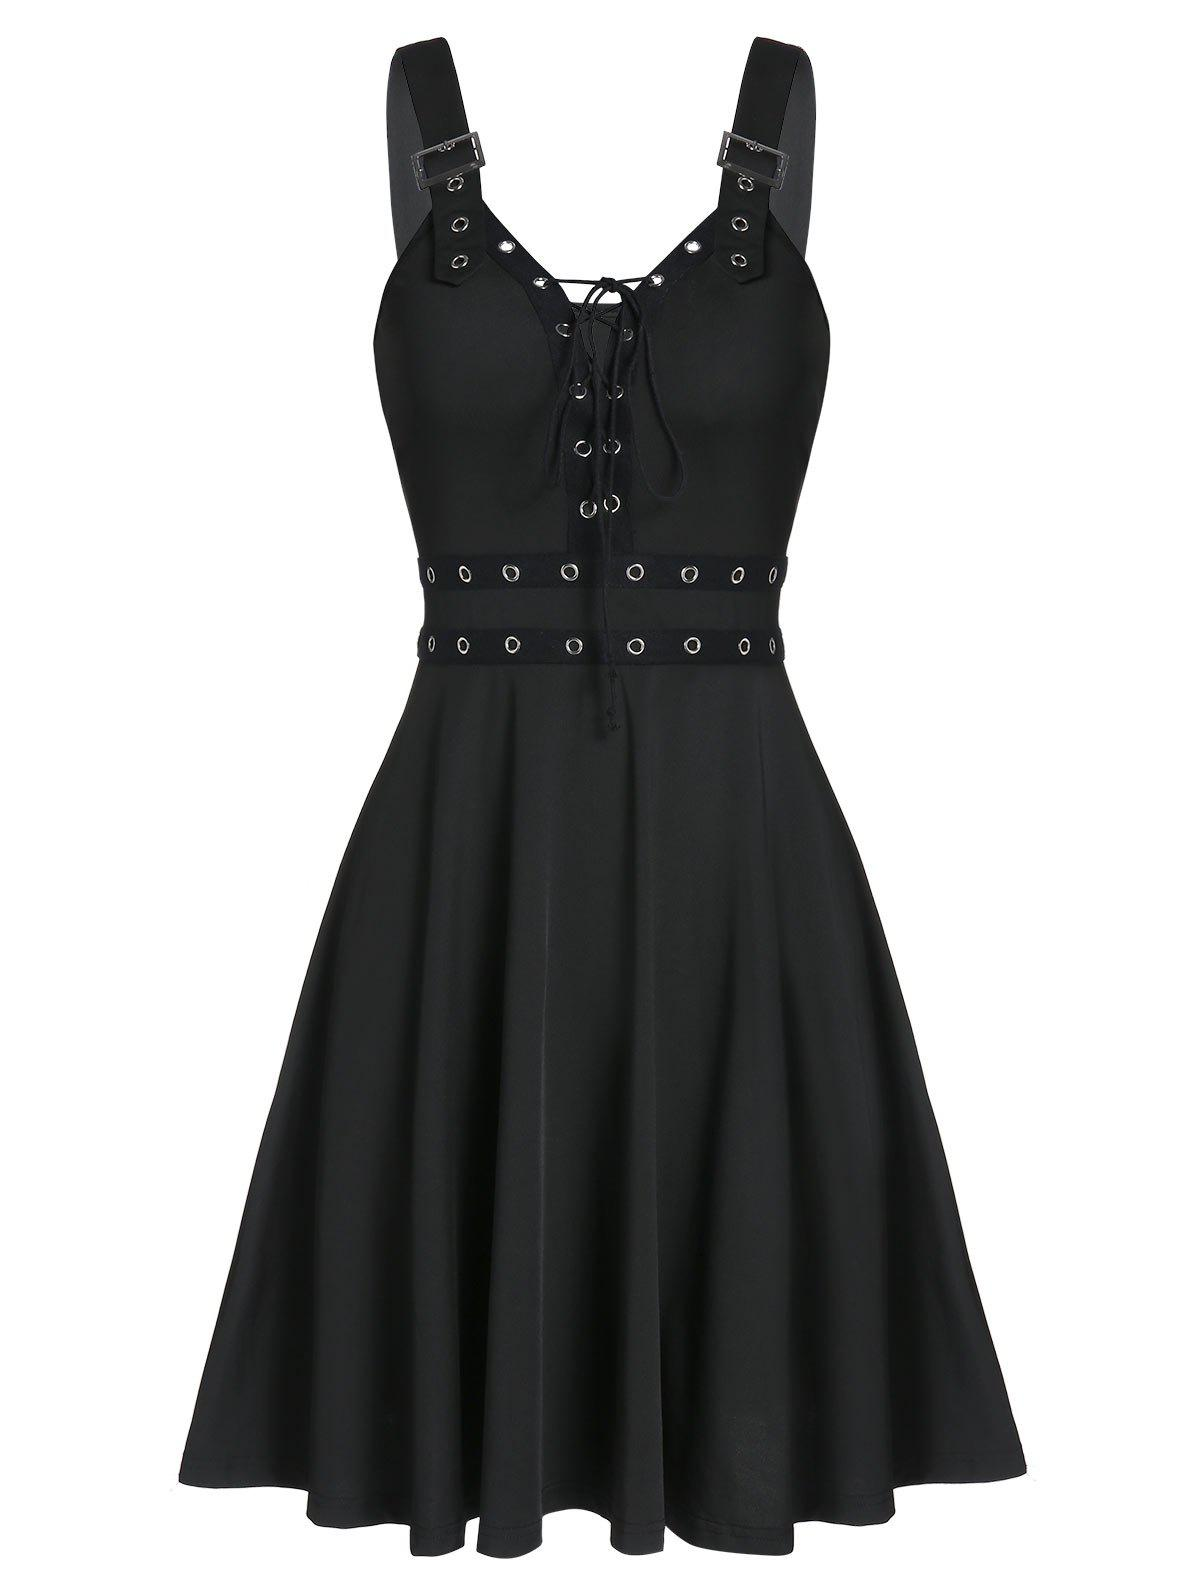 Lace Up Solid Fit And Flare Gothic Dress - BLACK 3XL